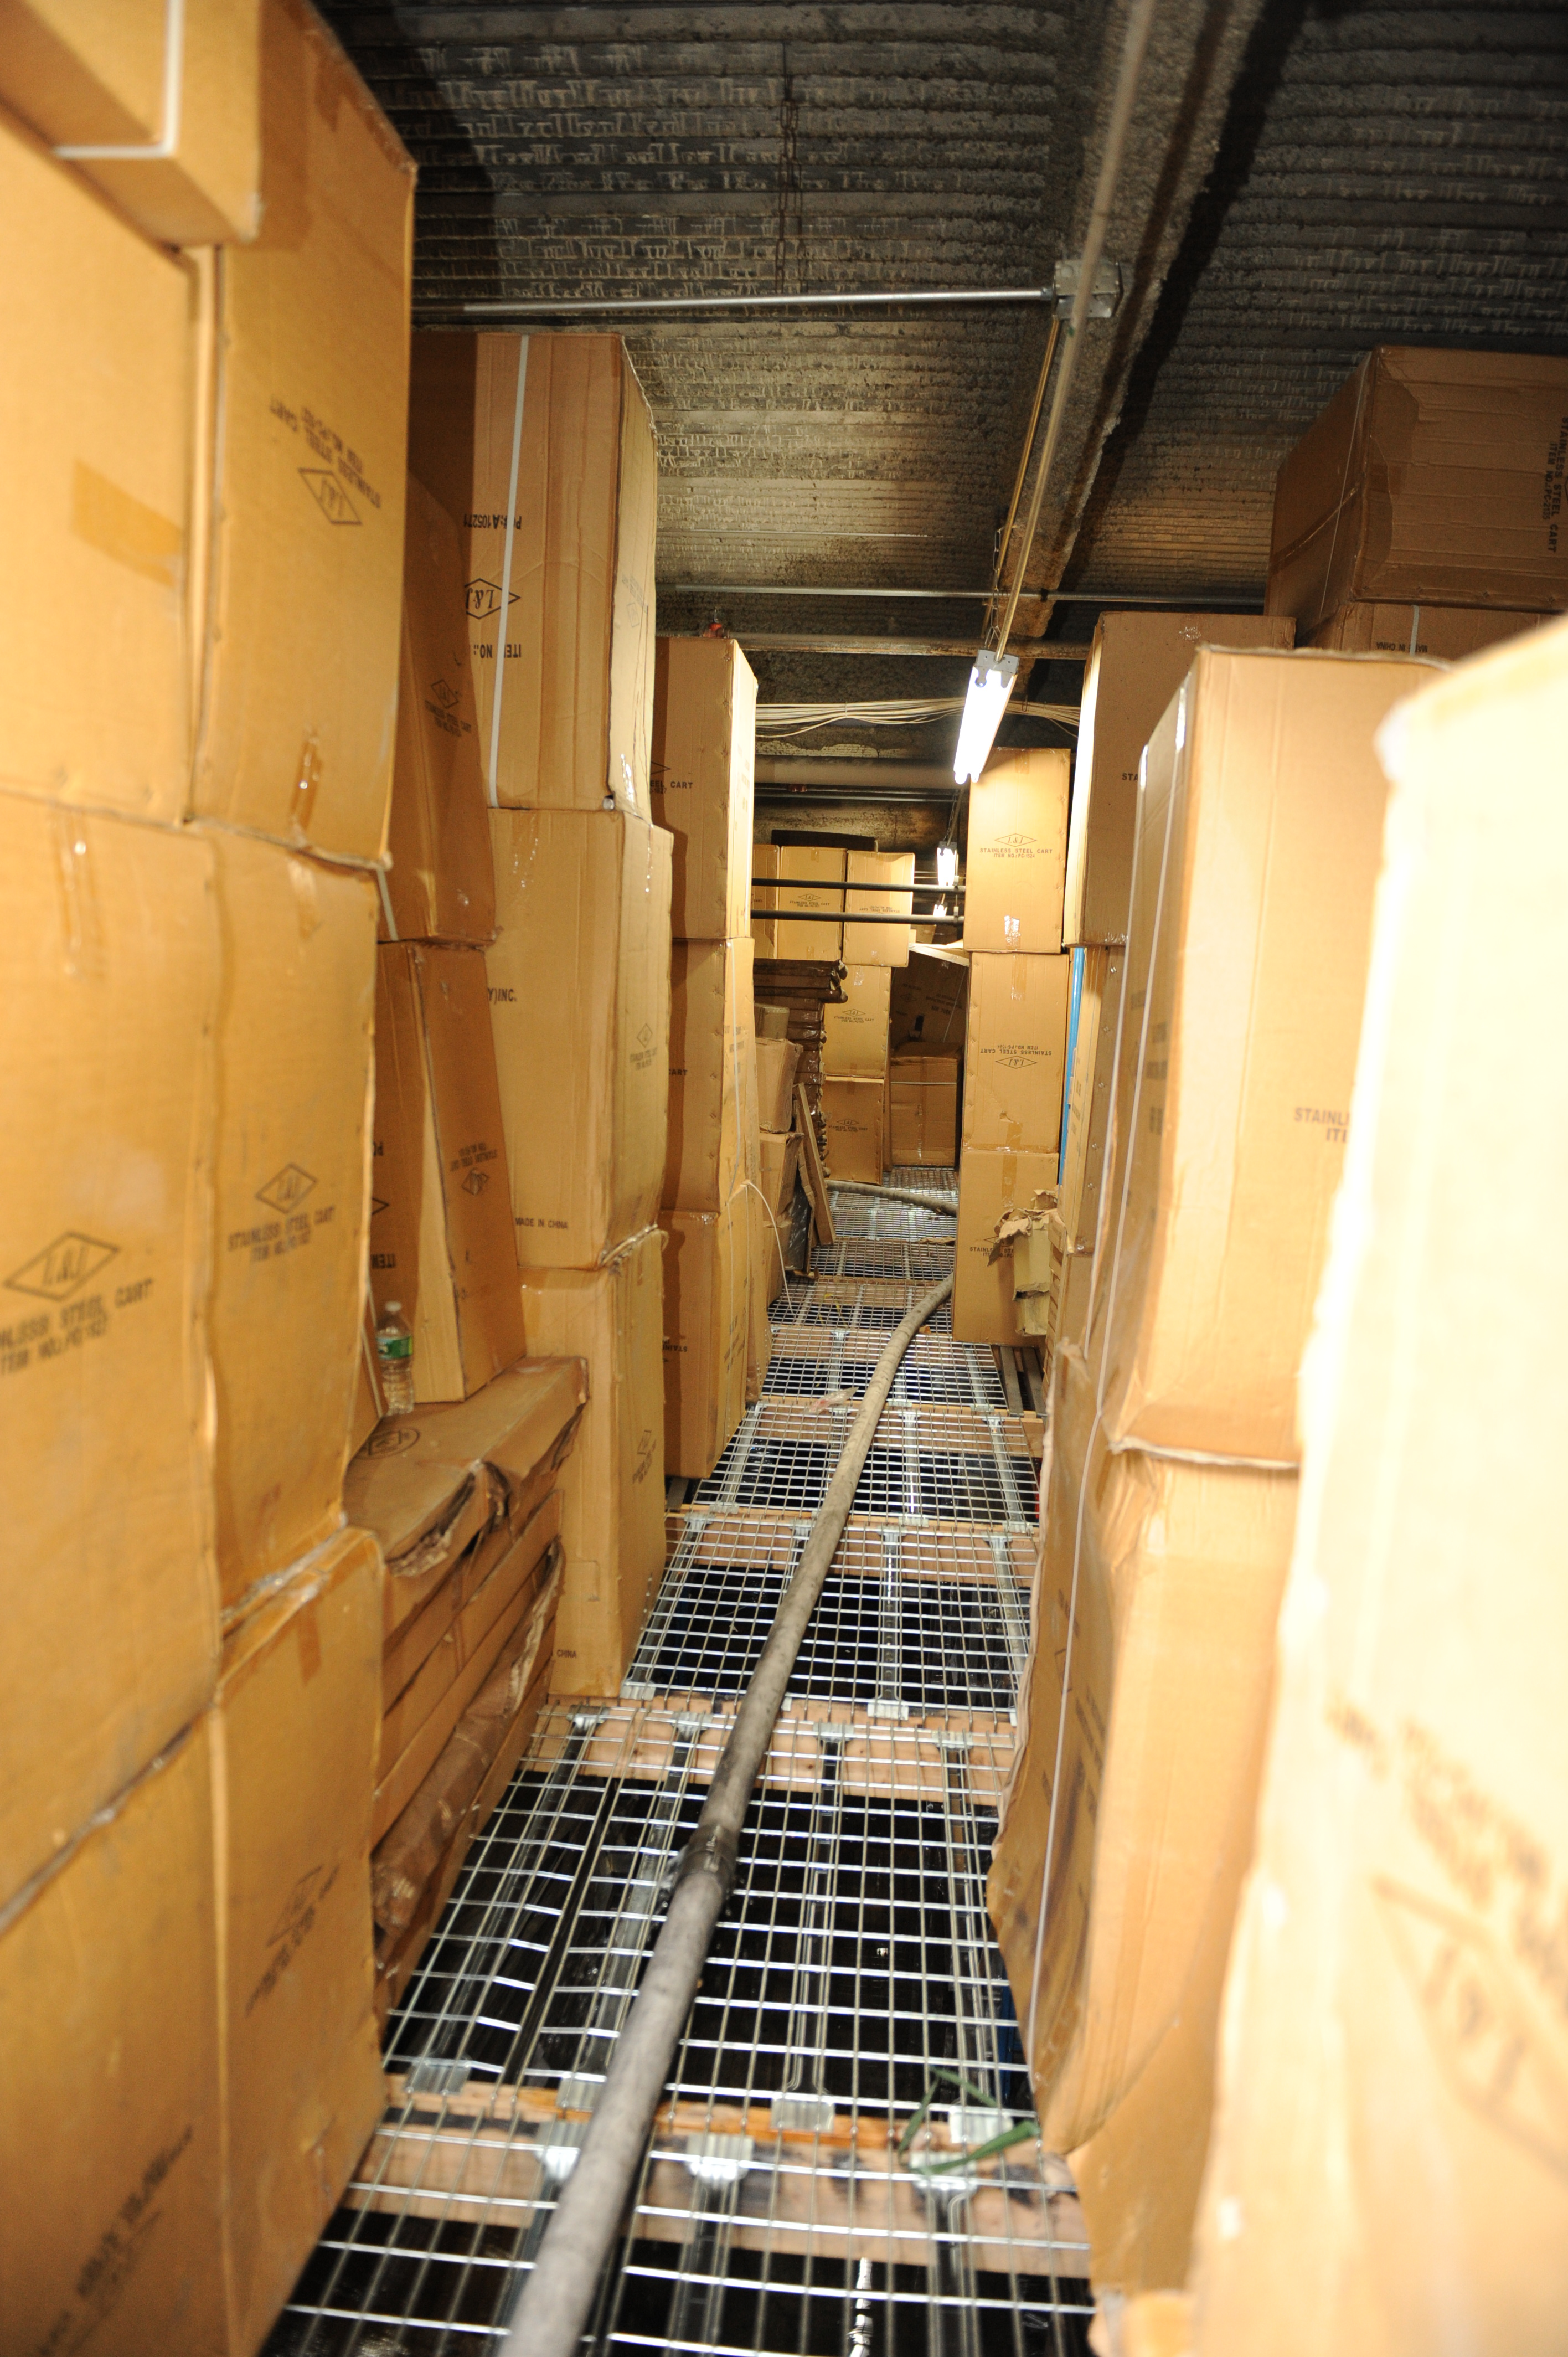 The charged attack hoseline stretched down a narrow aisle of the catwalk storage area. Large cardboard boxes are stacked from floor to ceiling on either side of the aisle.